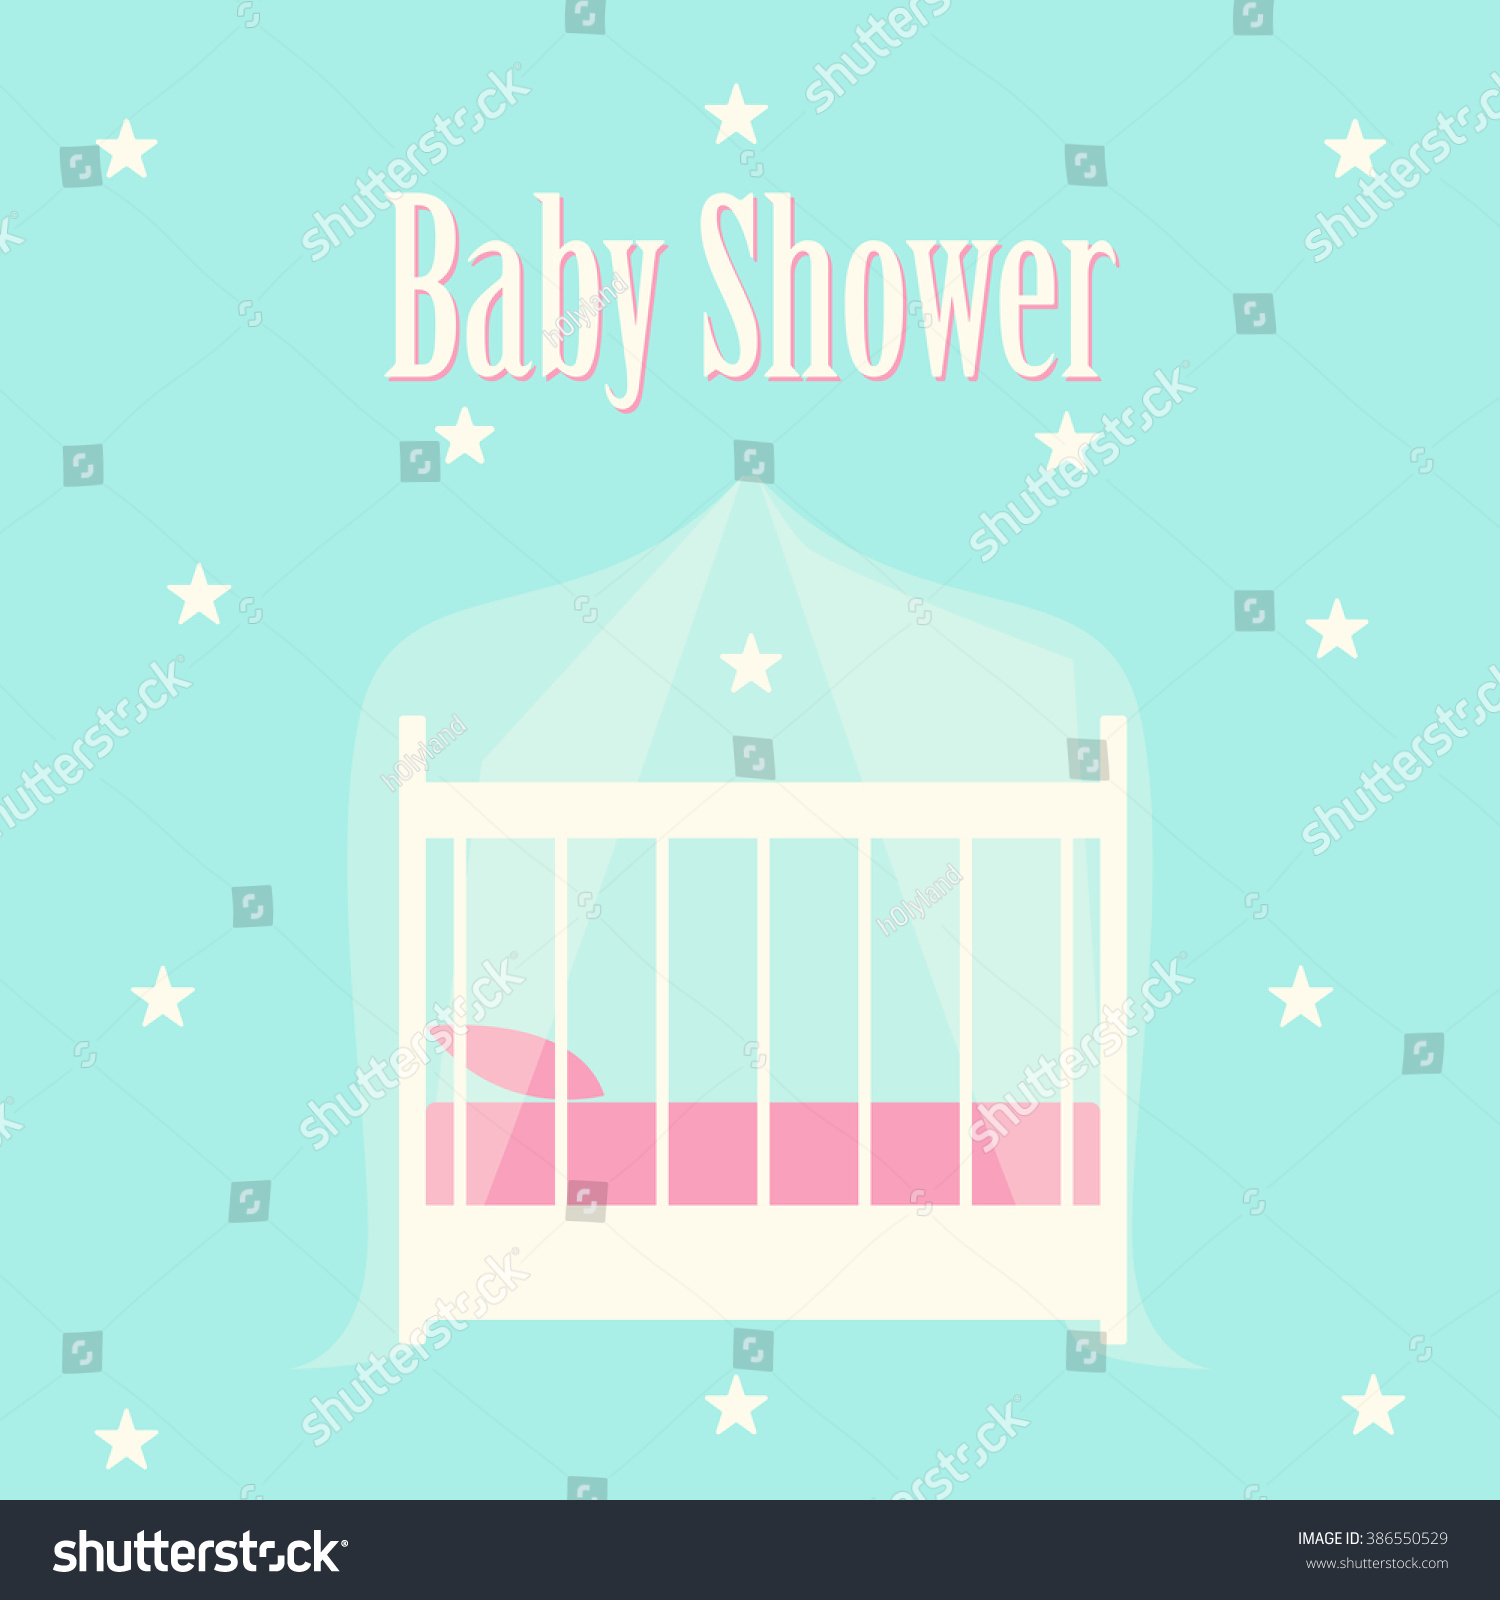 Baby Shower Invitation Cute Card Template Stock Vector 386550529 ...